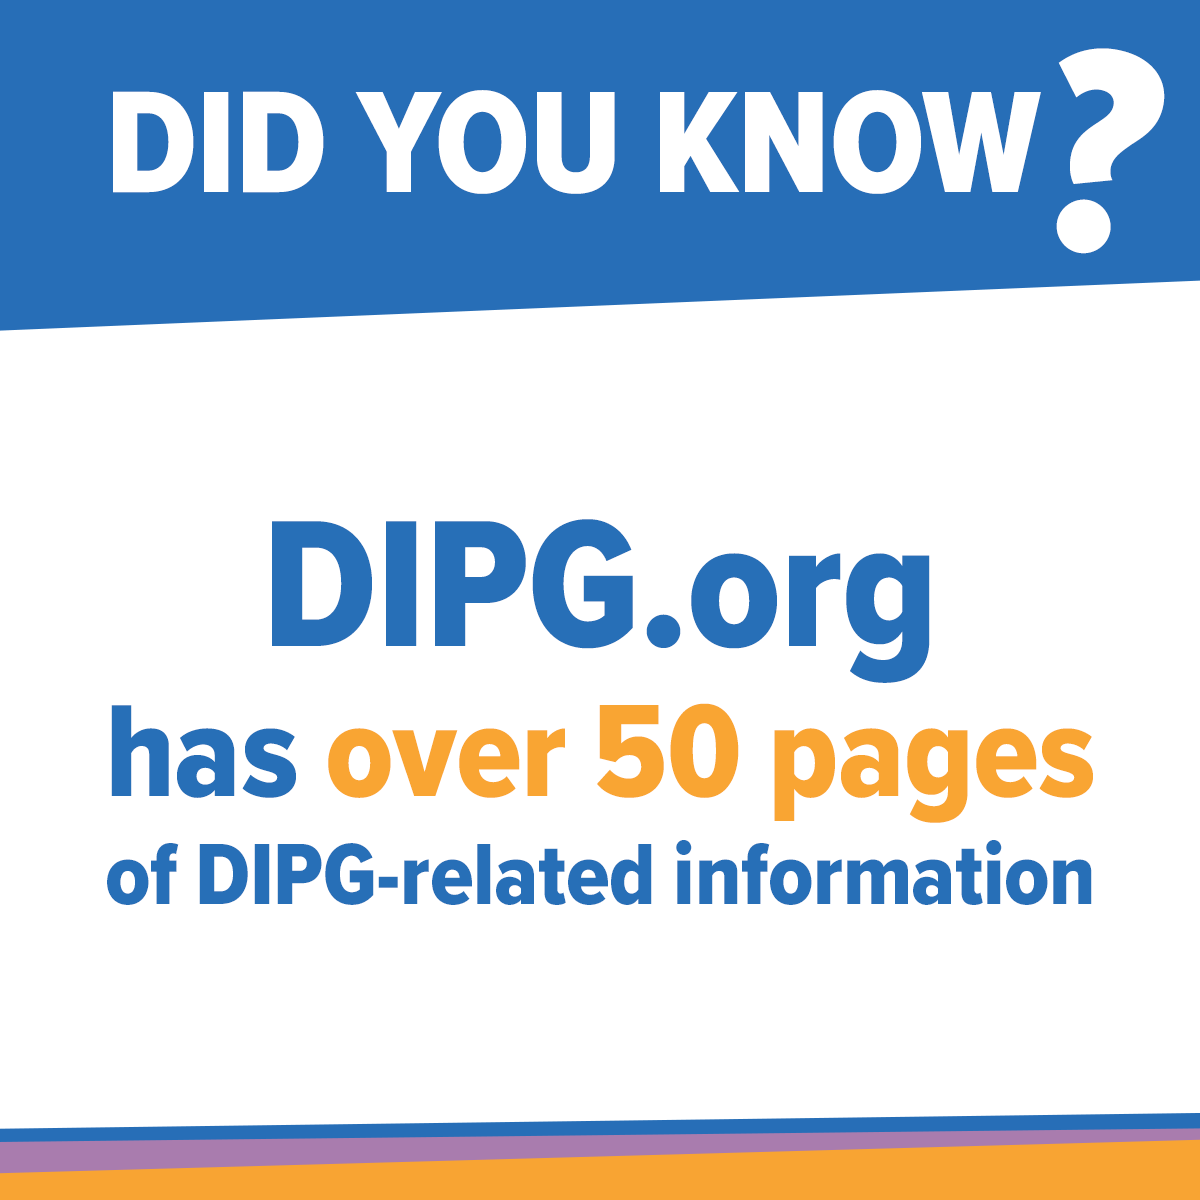 DIPG.org has 50 pages of DIPG content